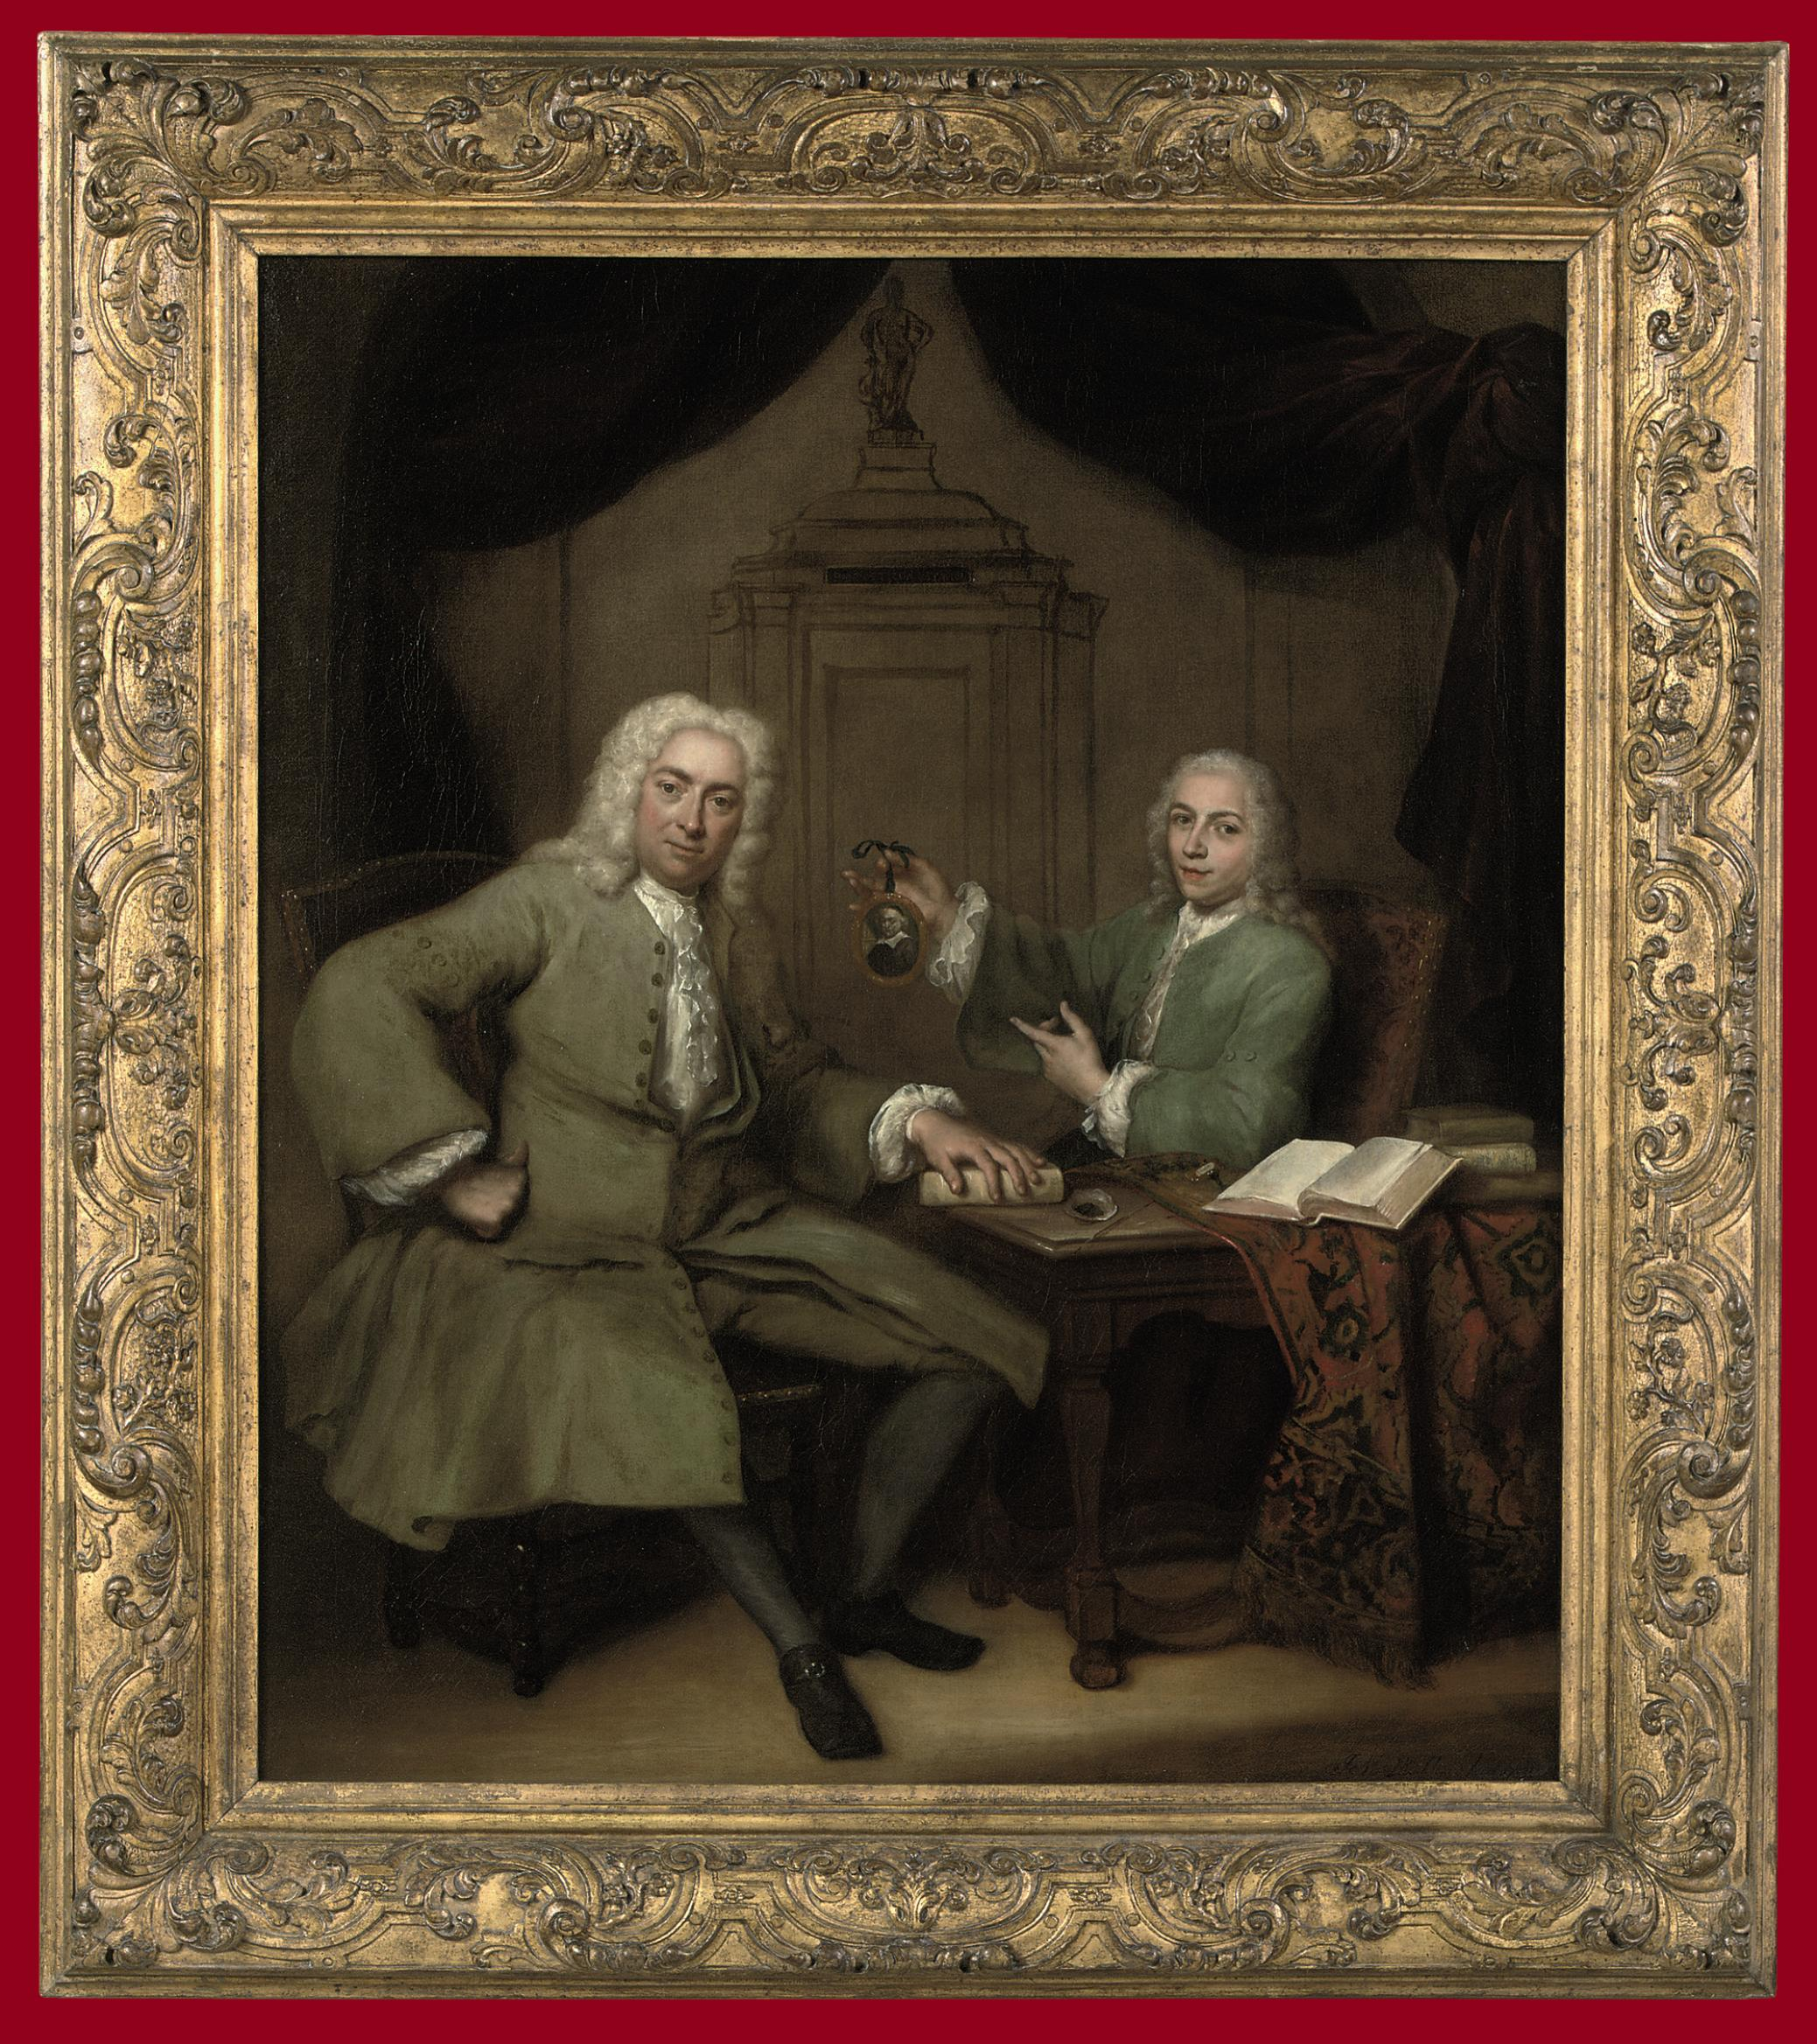 Double portrait of Michiel de Roode (1685-1771) and Jan Punt (1711-1779), holding a miniature portrait of Joost van den Vondel, seated full-length at a table in a decorative room